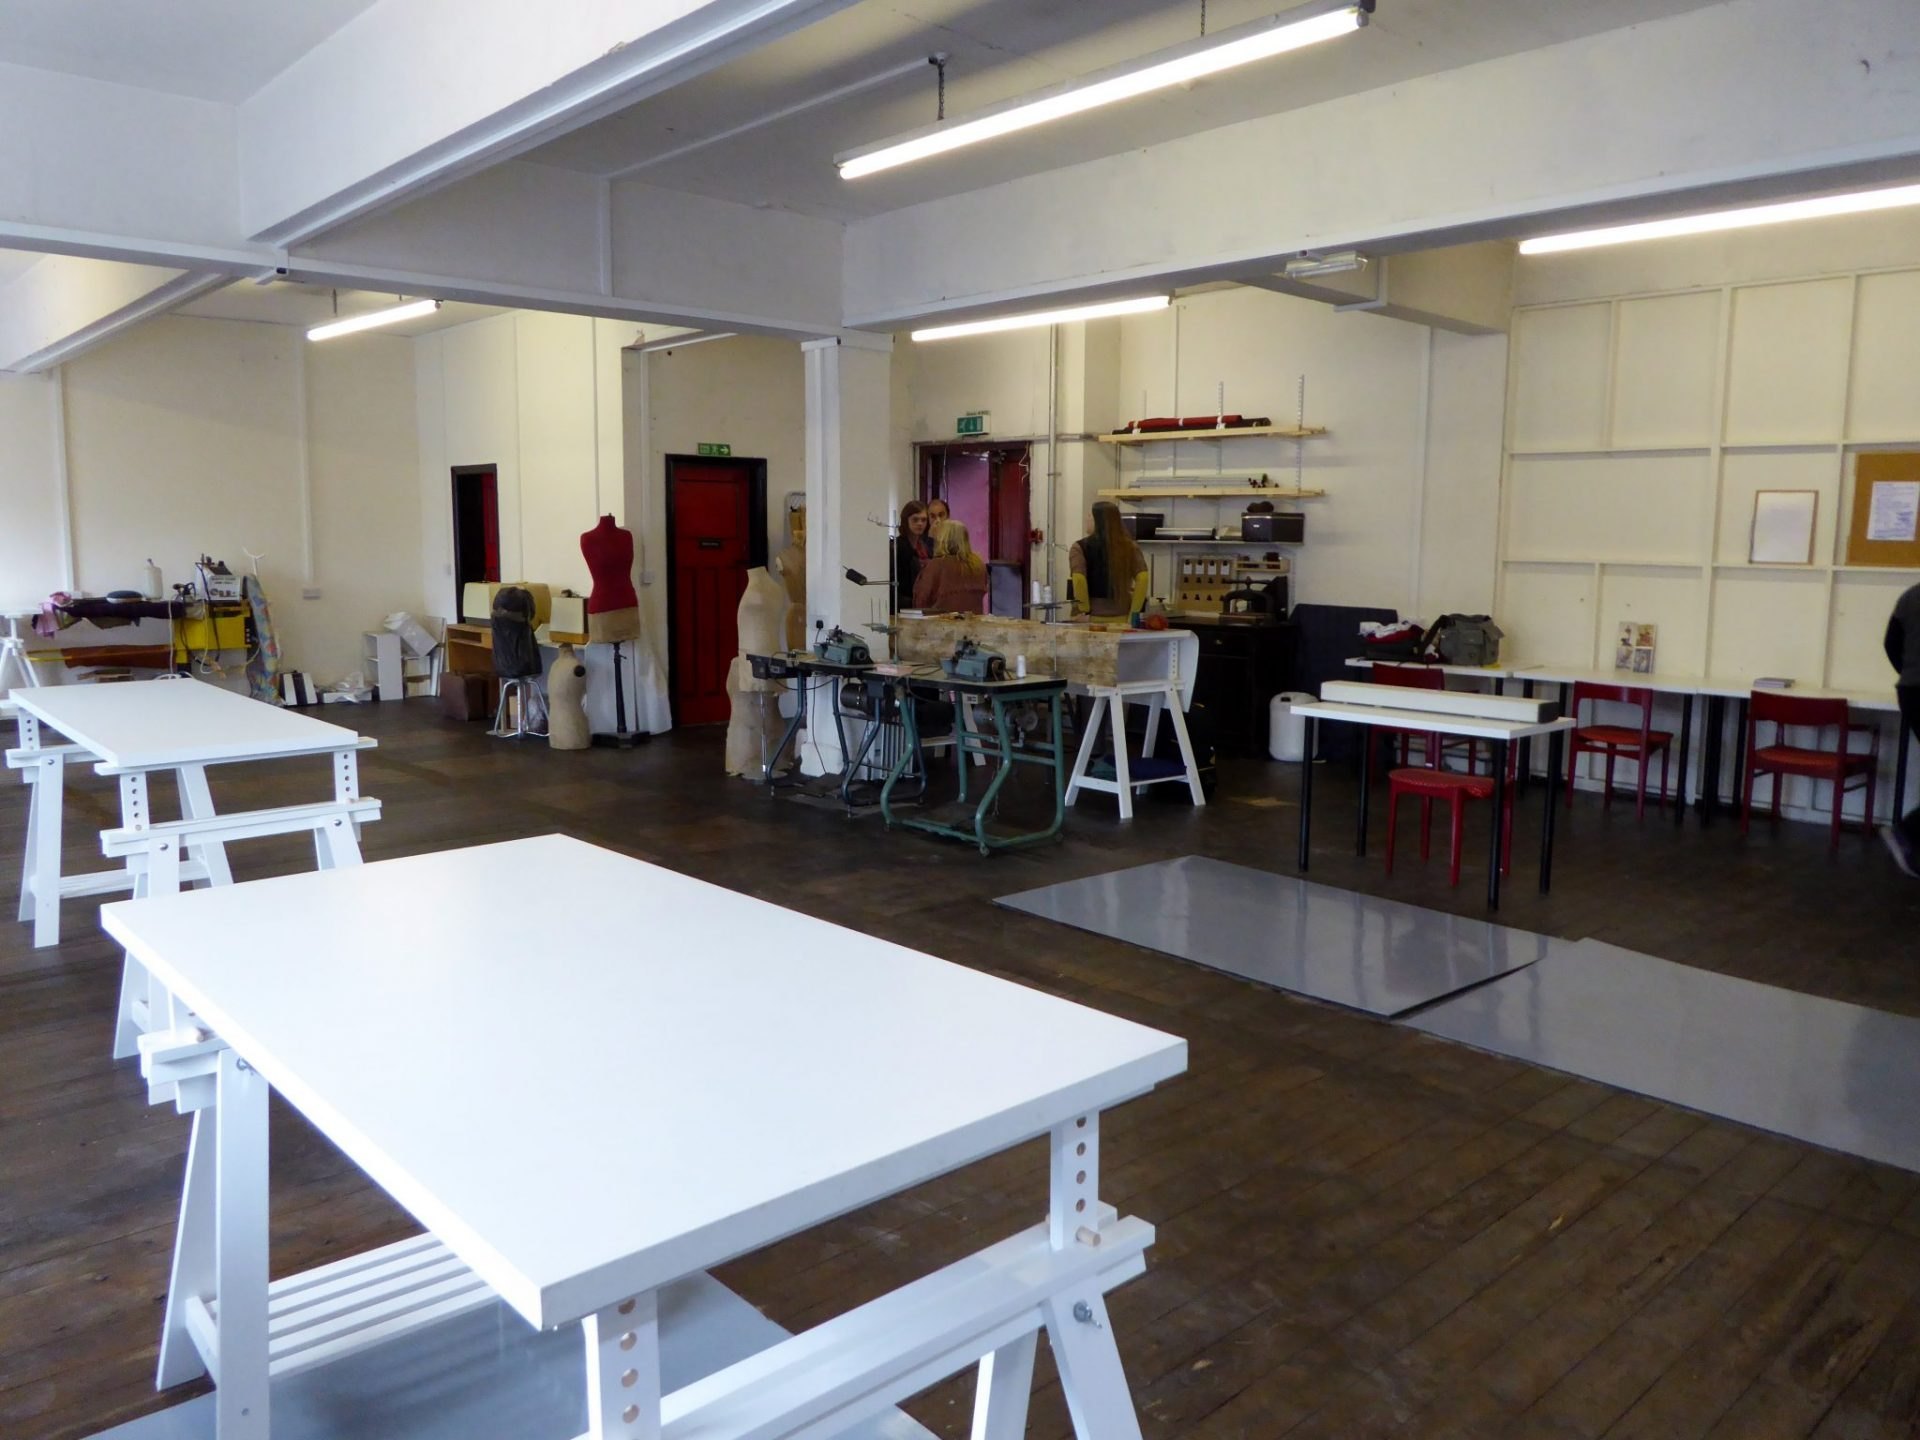 Sewing Studio Hire For Fashion Designers Costume Makers In Leeds